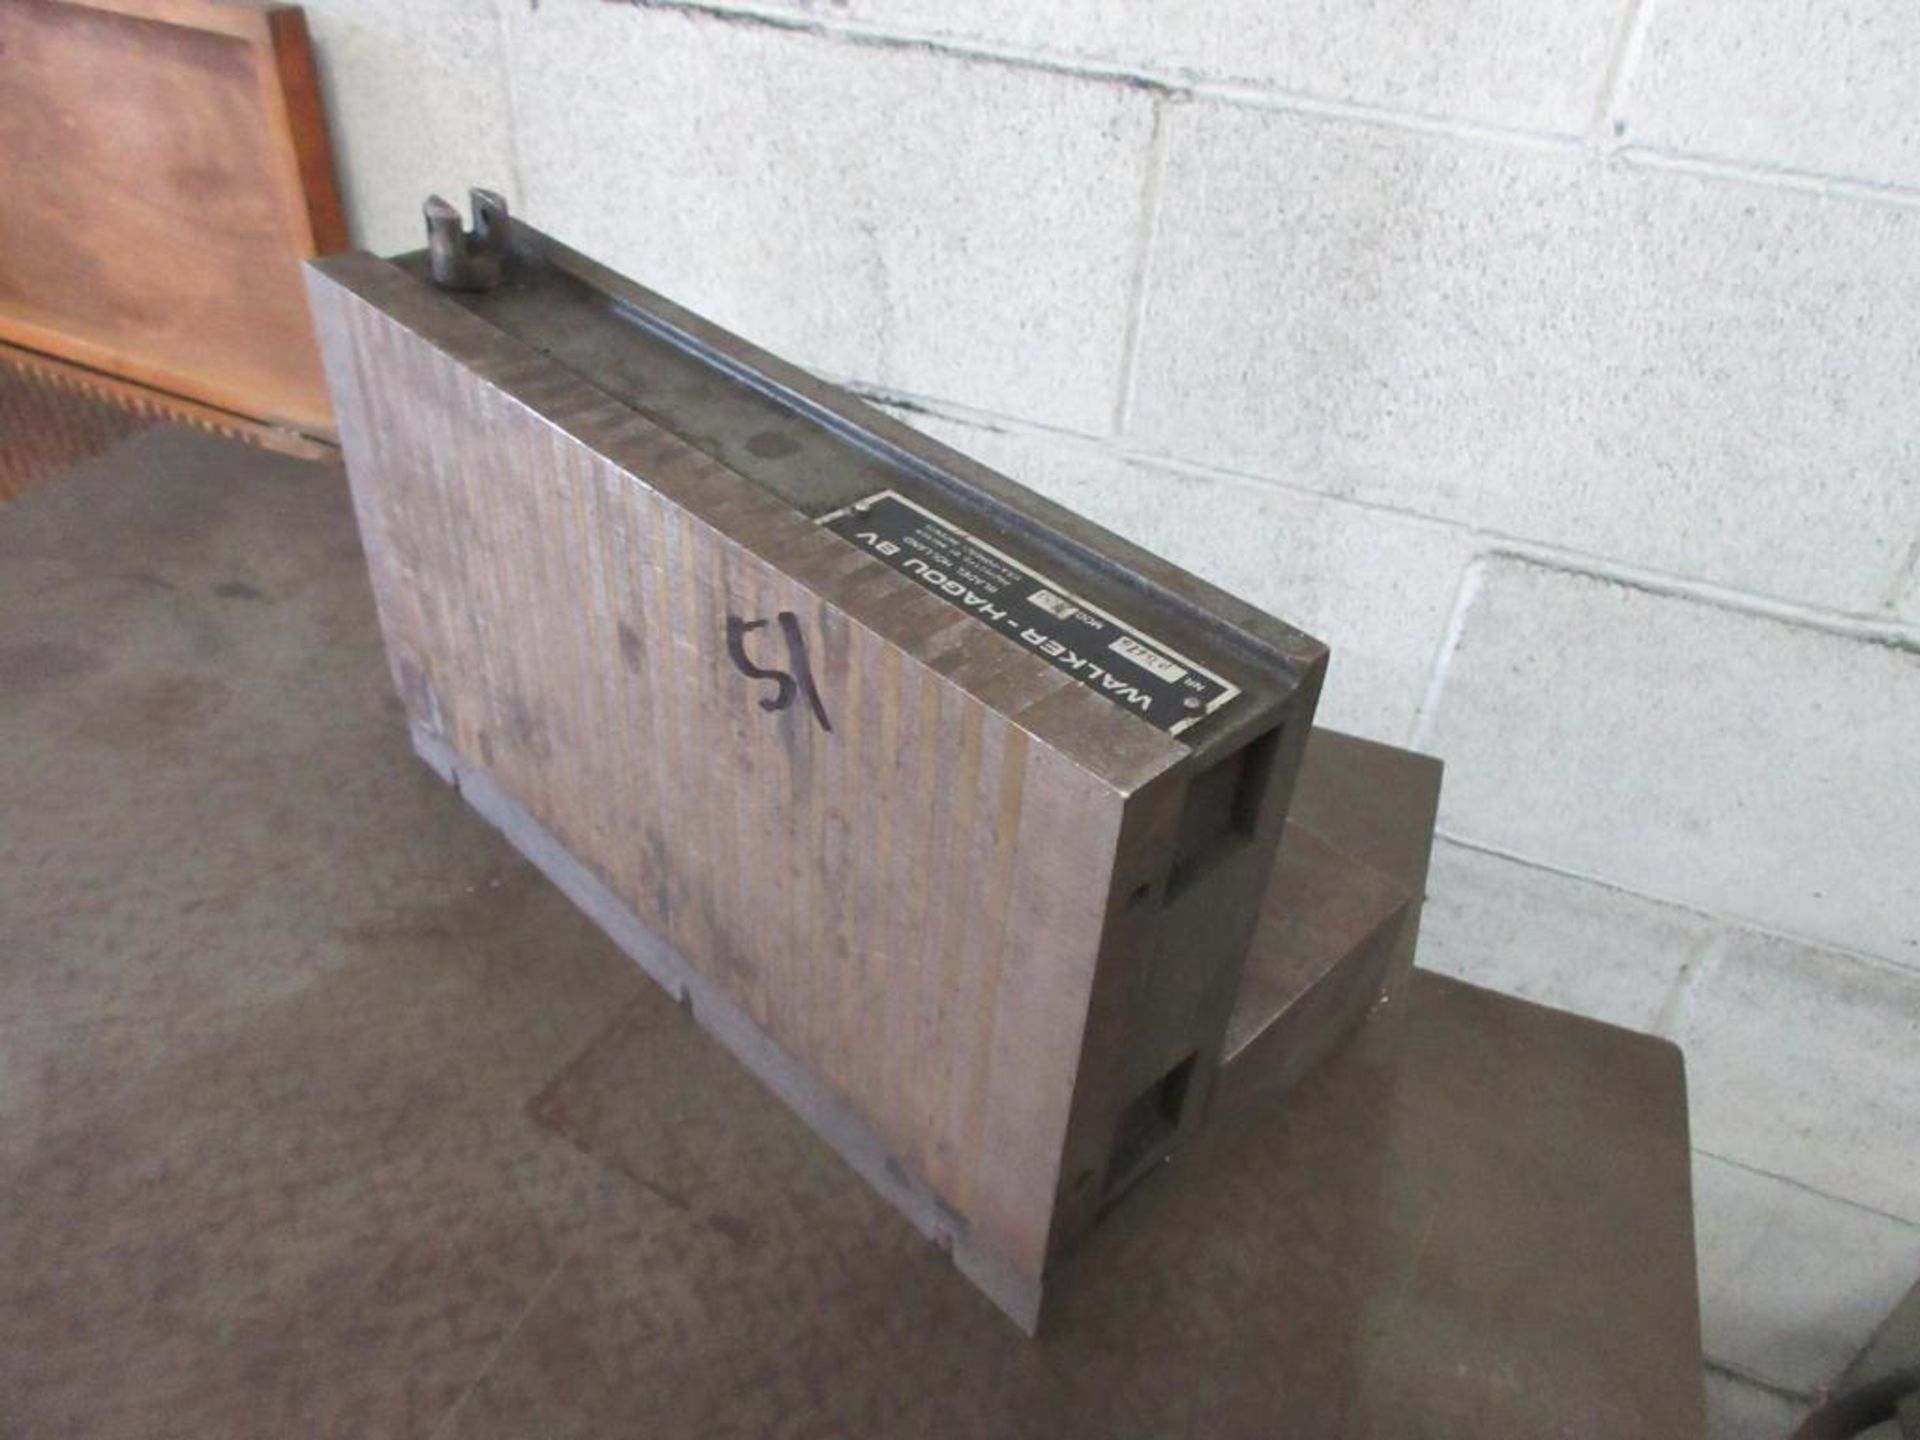 """24"""" X 18"""" X 1"""" PRECISION SURFACE TABLE, 6""""X12"""" WALKER MAG CHUCK - Image 2 of 2"""